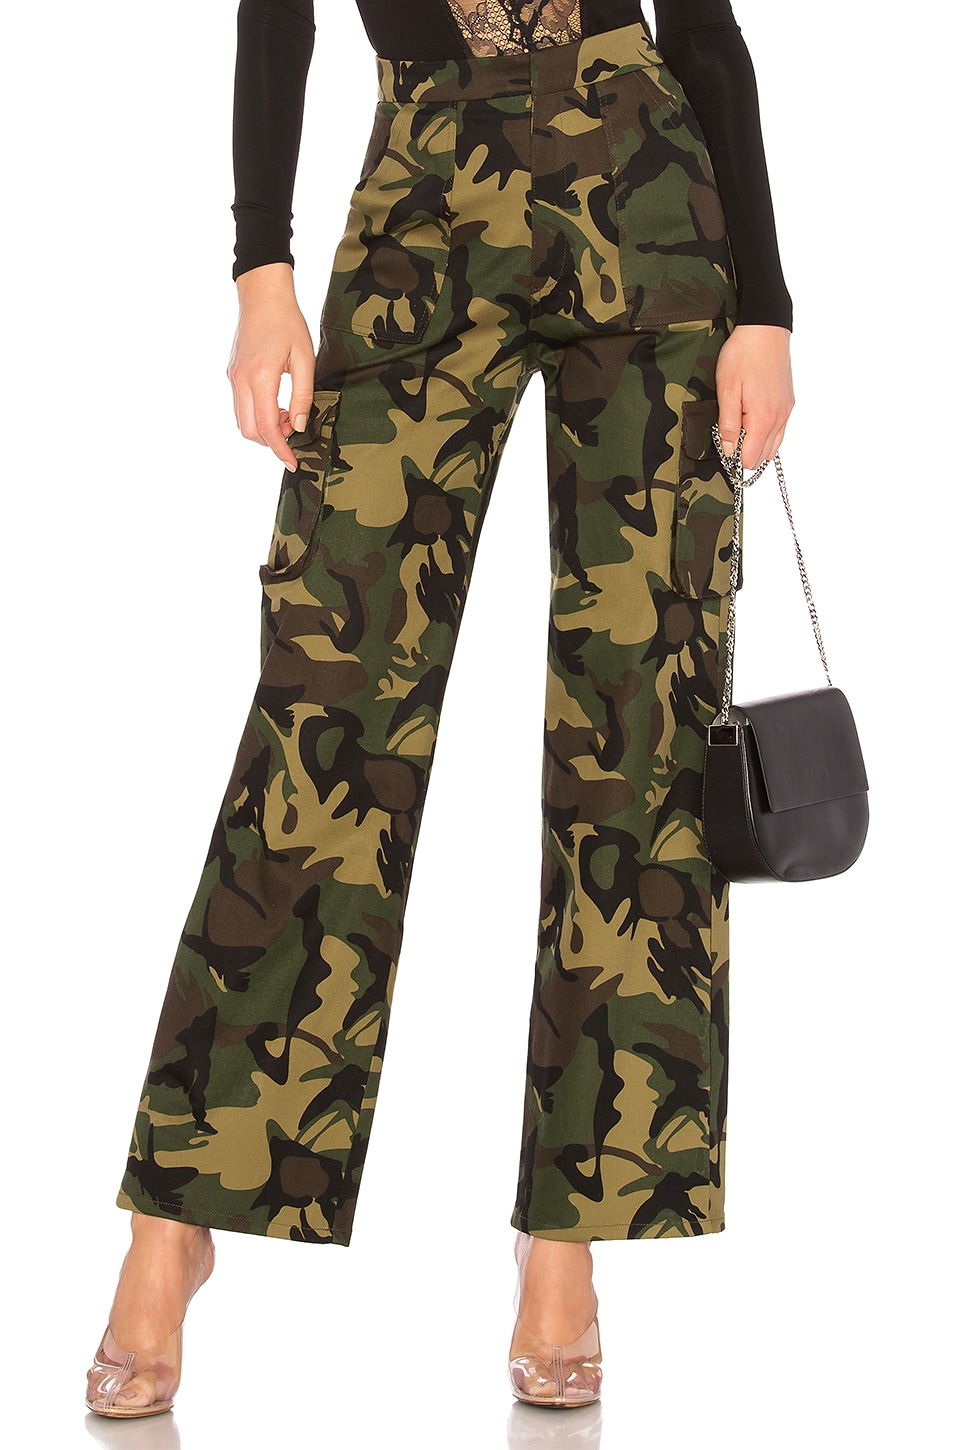 I.AM.GIA Fia Pant in Camo